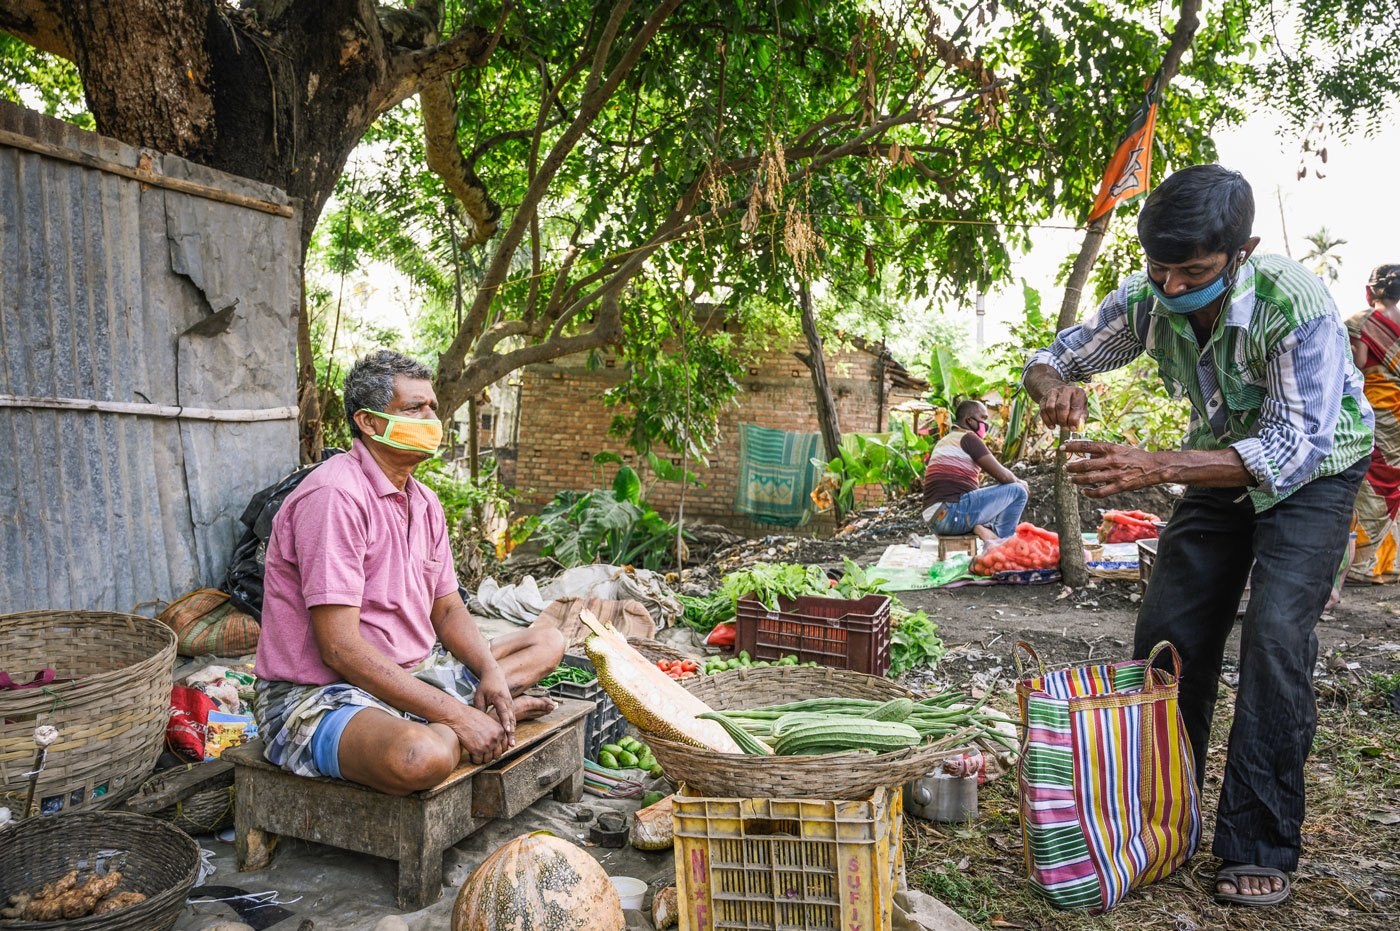 "Ram Dutta, a 56-year-old vegetable seller, buying lemon tea from Santi Halder. His income has dropped to half his daily earnings of Rs. 300. He says, ""I didn't have a lot of sales before, now it's even worse."" Santi Halder, 48, has been selling jhal muri (a popular street food in West Bengal) for 20 years, but with lockdown restrictions on cooked food, is selling tea. His income too has dropped from Rs. 250-300 to Rs. 100-120 a day."